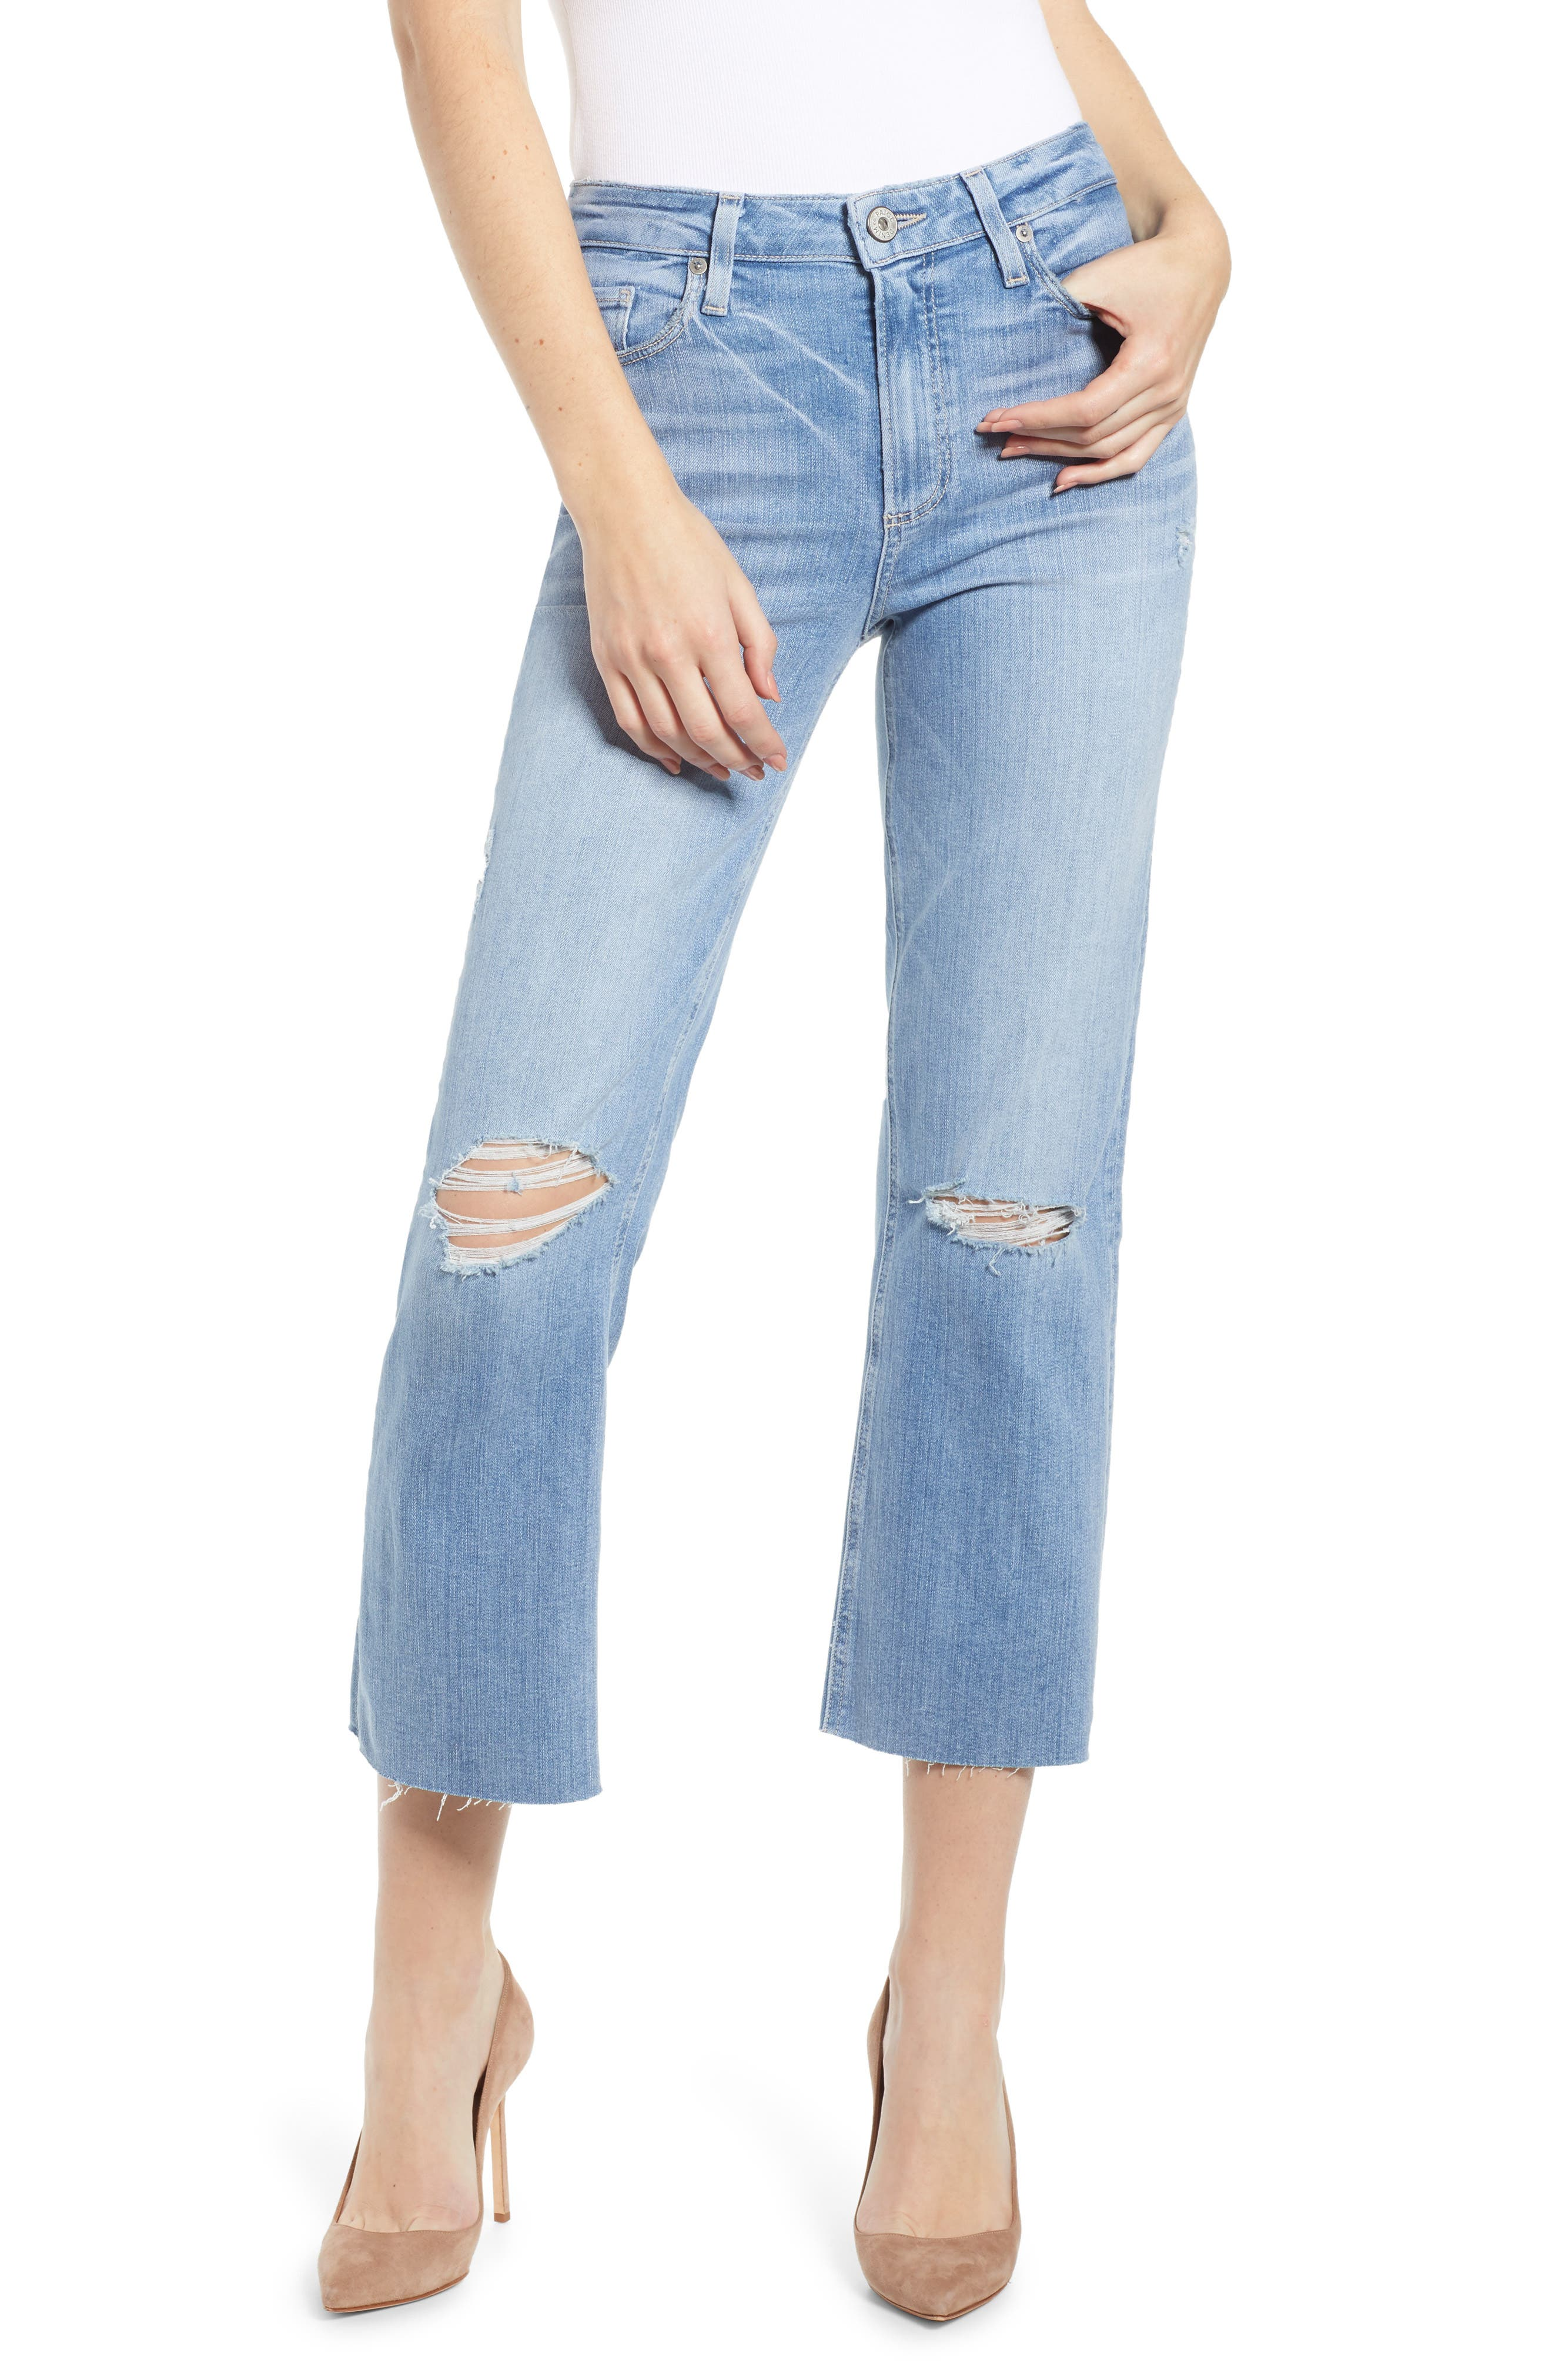 PAIGE, Atley Ripped Raw Hem Ankle Flare Jeans, Main thumbnail 1, color, FLORETTA DESTRUCTED